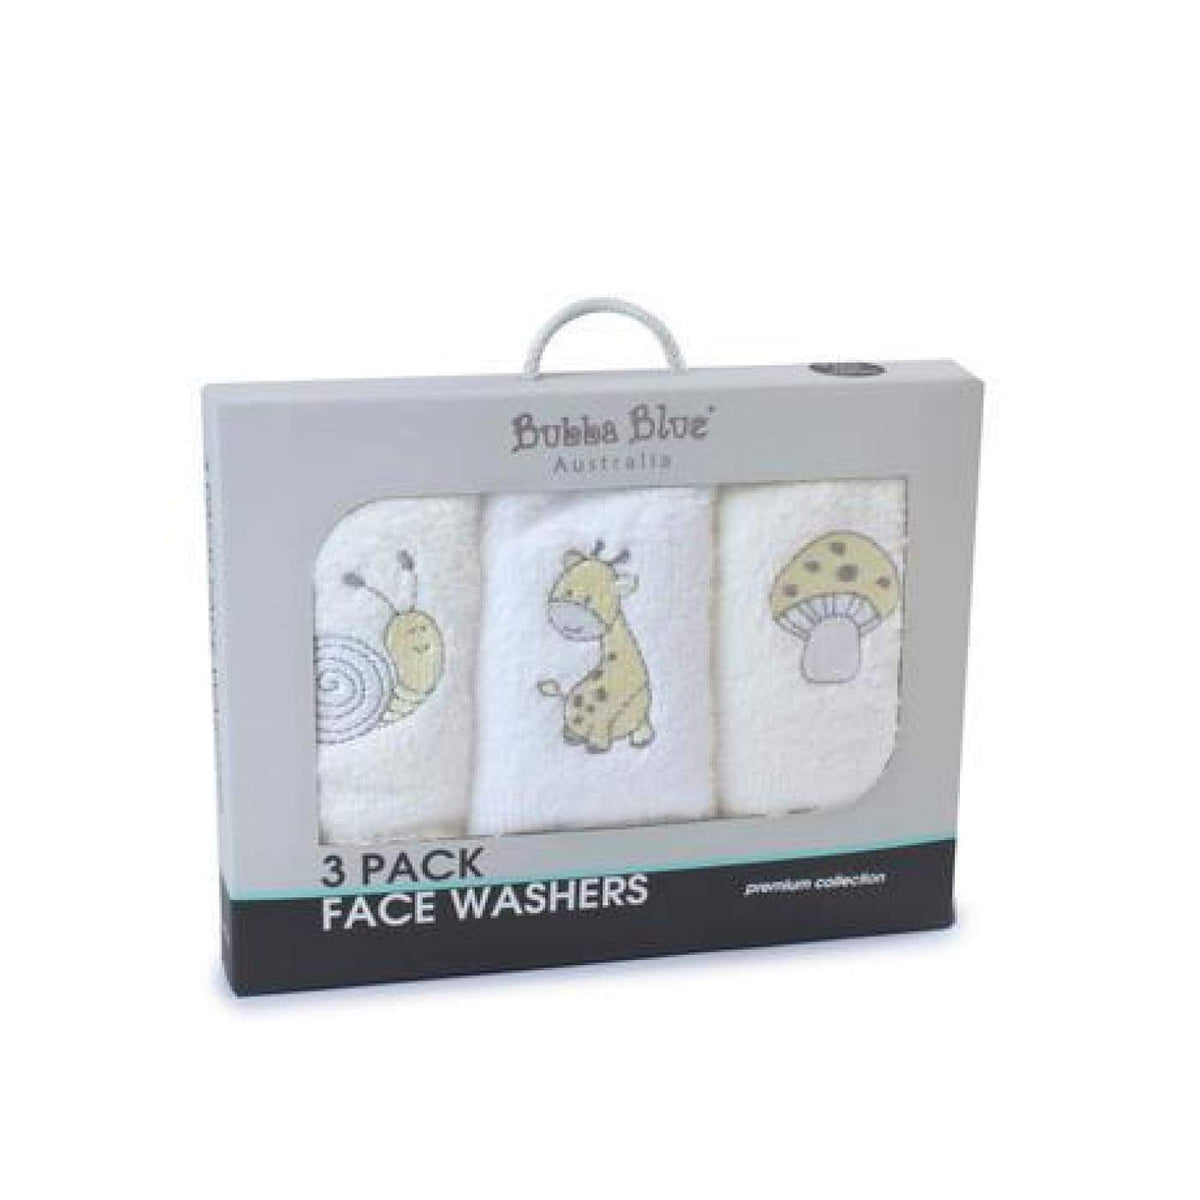 Bubba Blue Face washers 3PK - Vanilla Playtime - BATHTIME & CHANGING - TOWELS/WASHERS